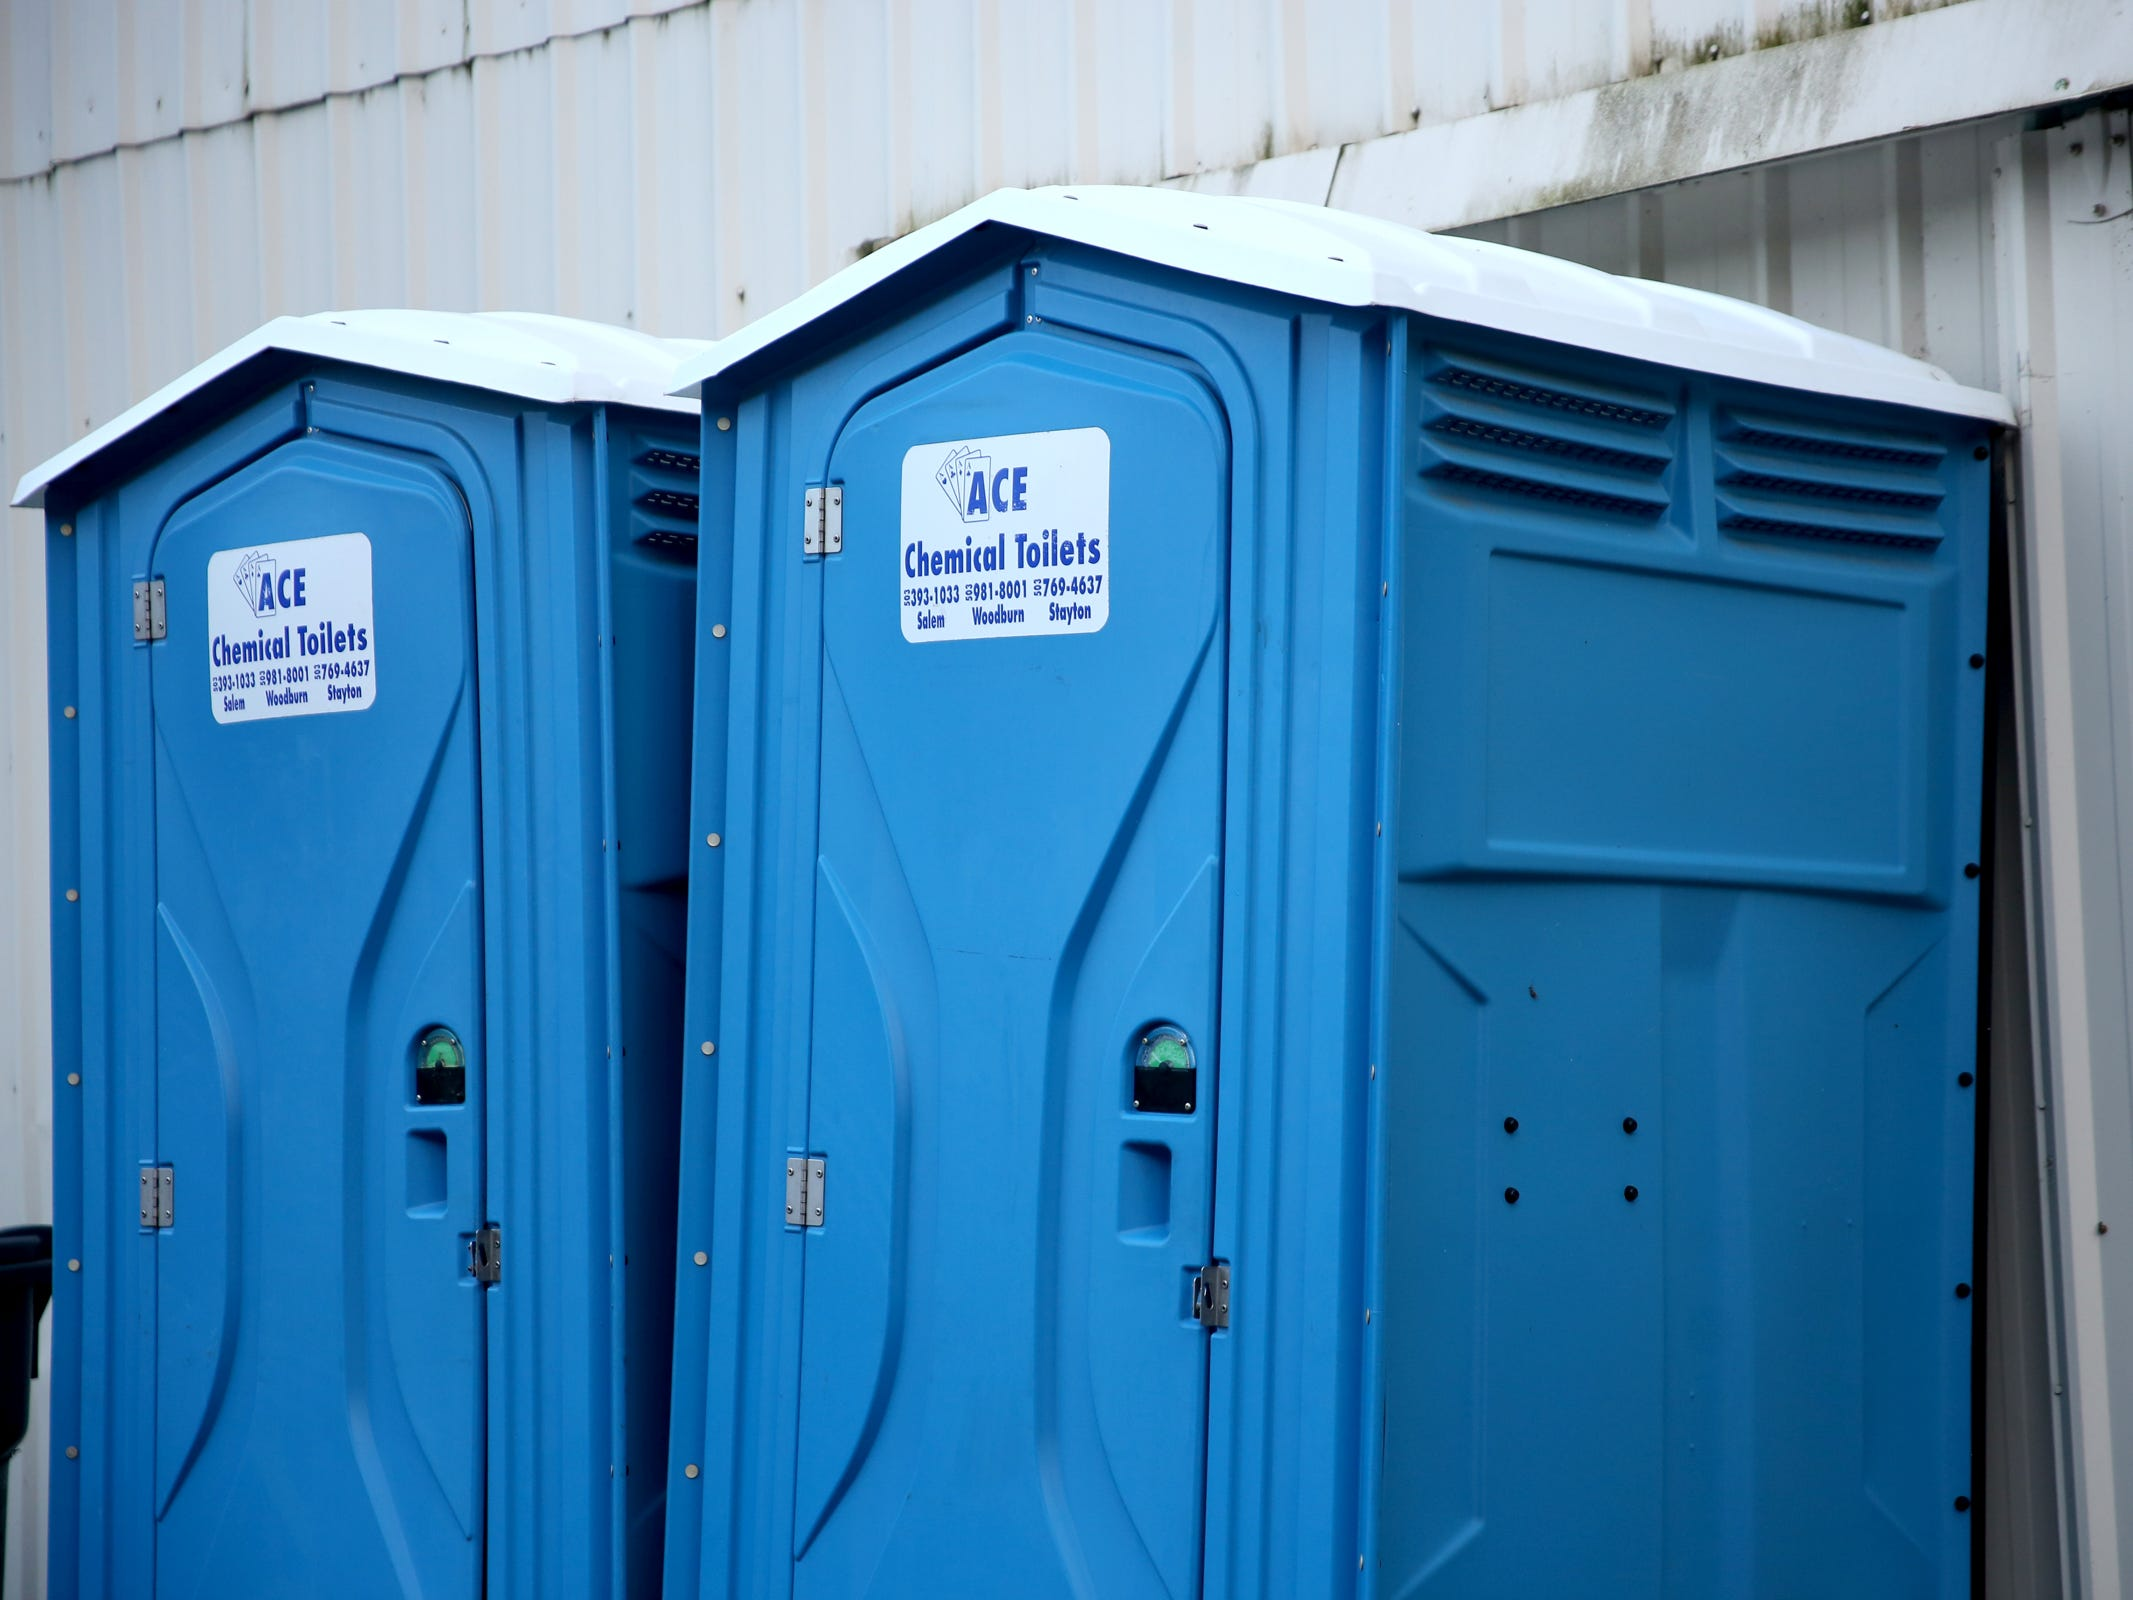 Port-a-potties near Mountain High Grocery in Detroit on Thursday, Jan. 3, 2019. The city has no sewer system, and residents and businesses rely on septic systems, many of which are in need of replacement.